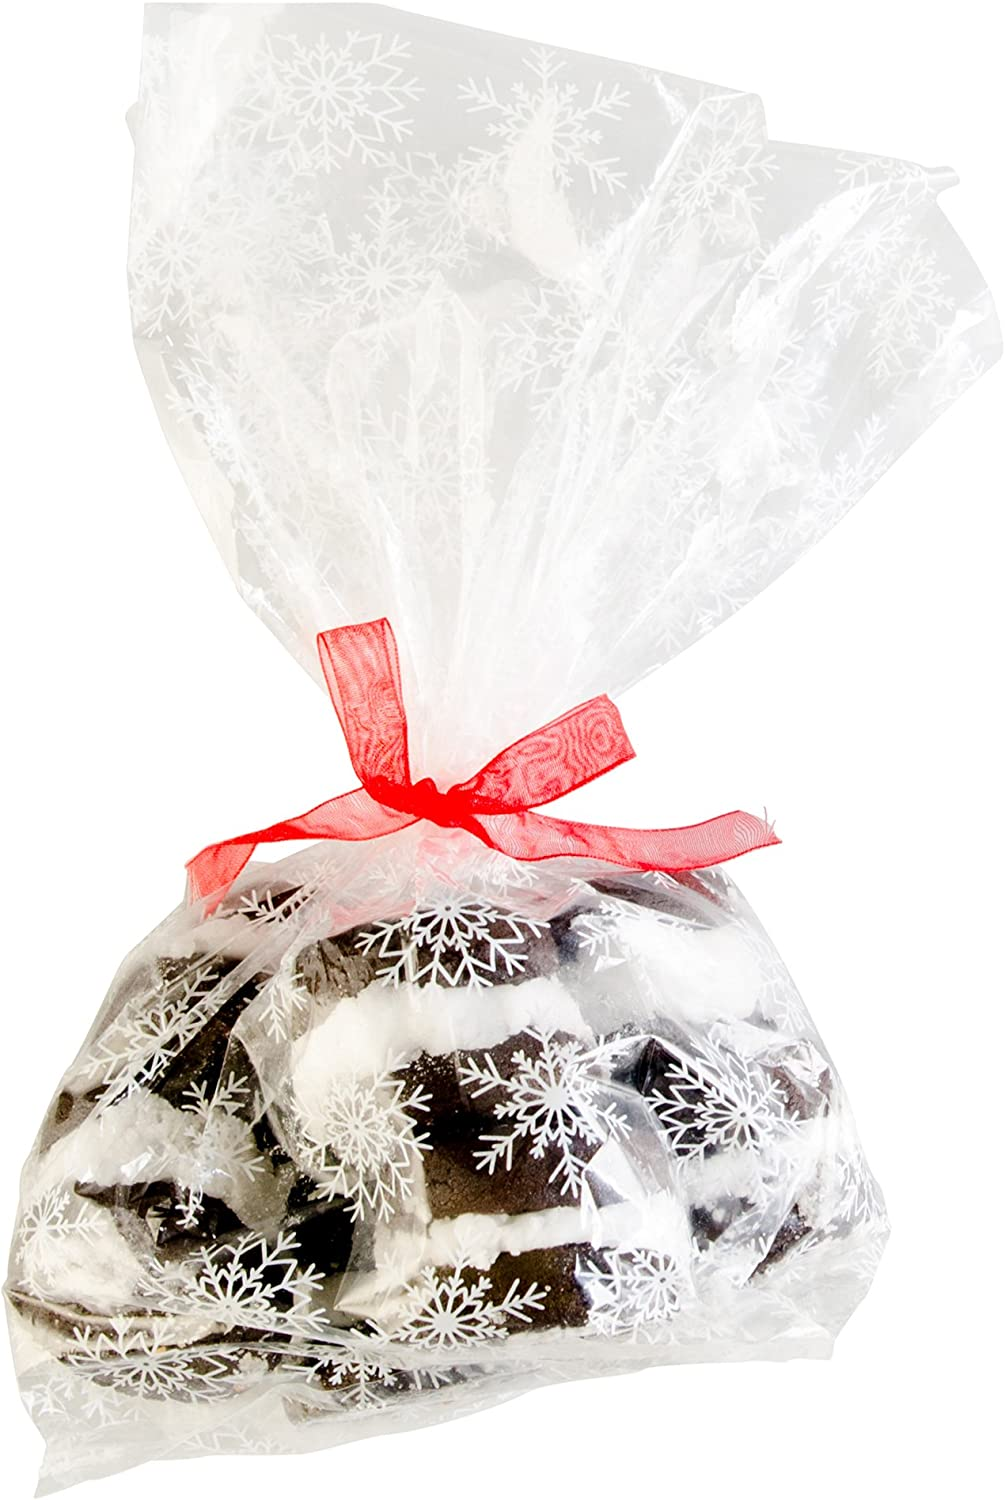 StarPack Premium Treat Bags, Party Favor Bags, Christmas Cookie Bags - Set of 20 (Large Size)